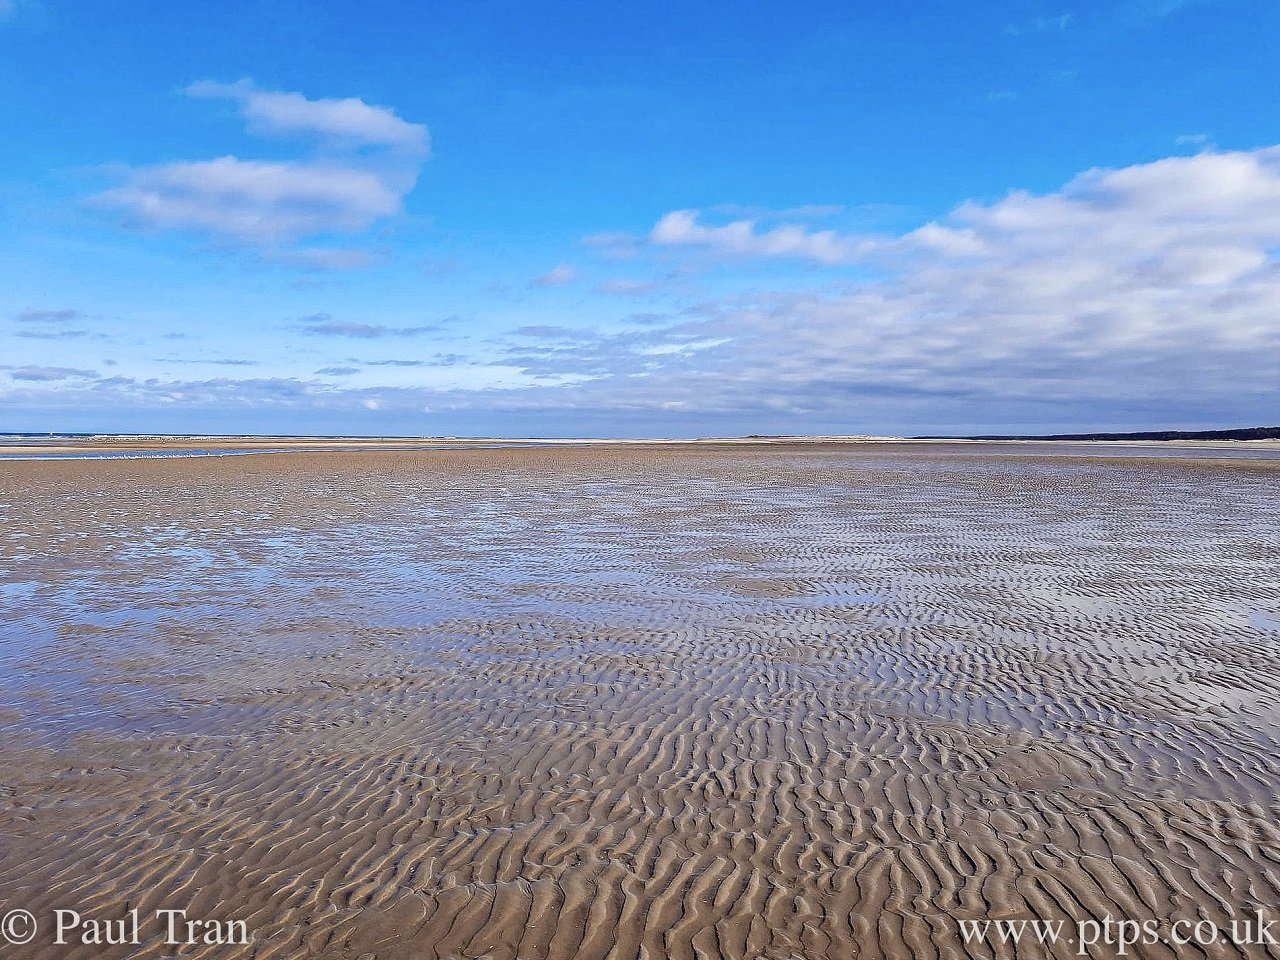 beach at low tide under a blue sky with a few small clouds